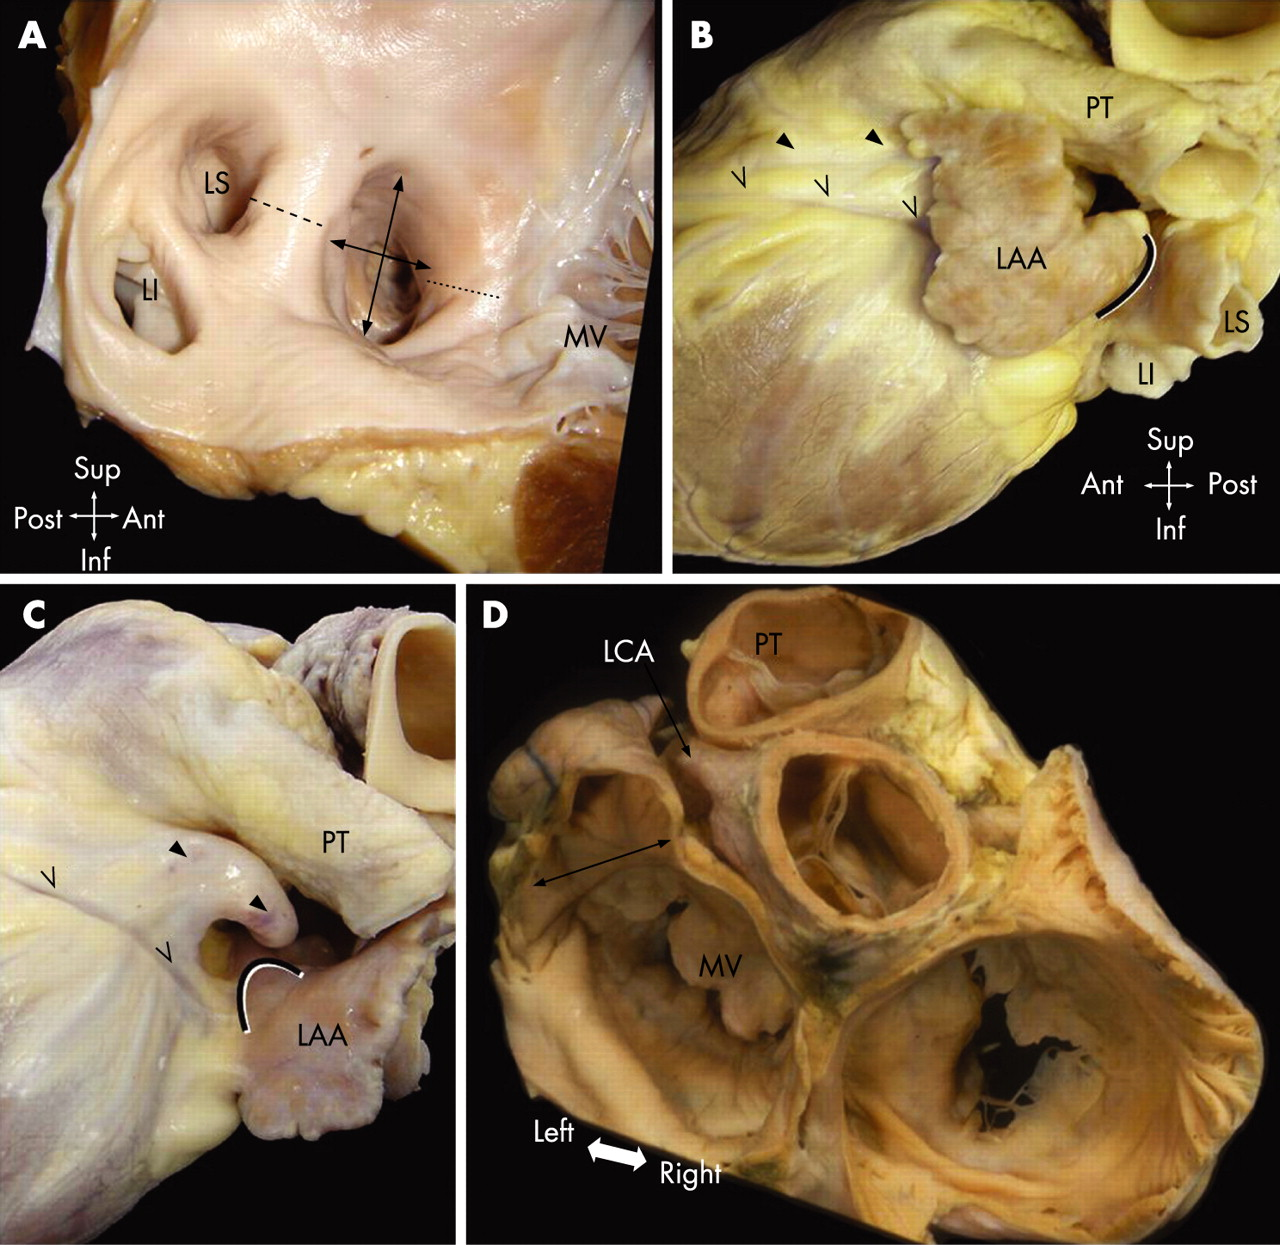 Occluding the left atrial appendage: anatomical considerations | Heart